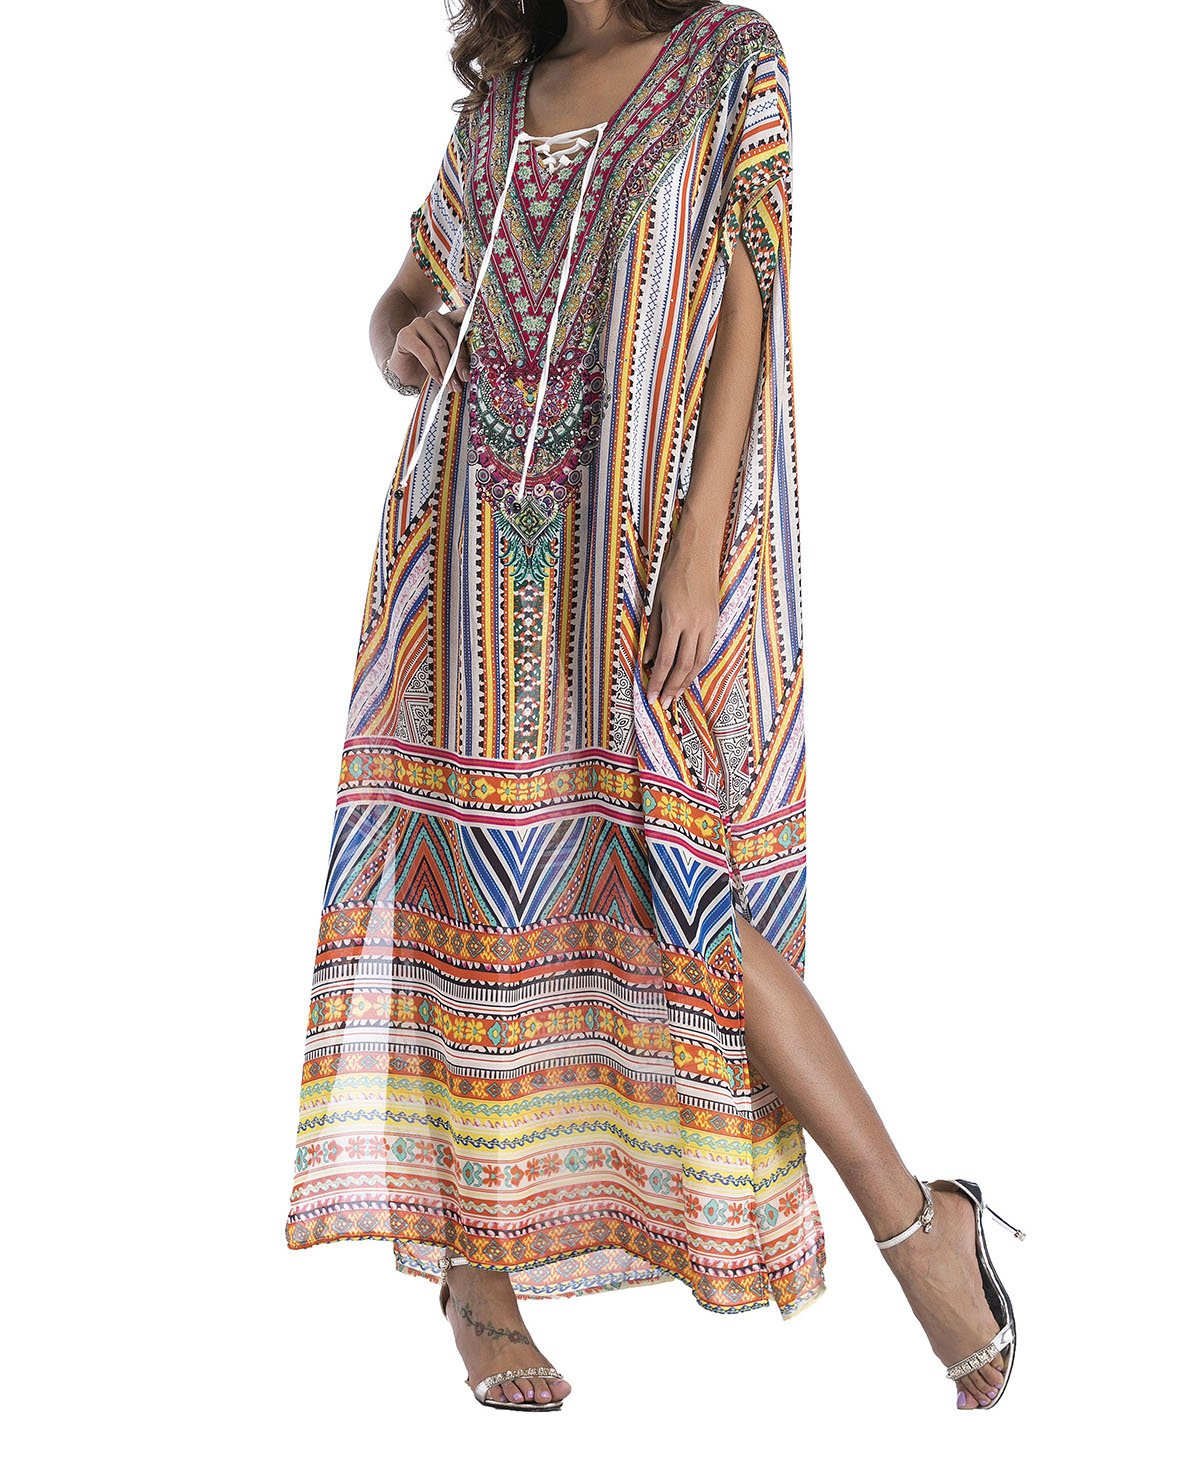 Flowy Rhinestone Long Caftan Beach Maxi Dress Sexy Cover Up For Women (style4)